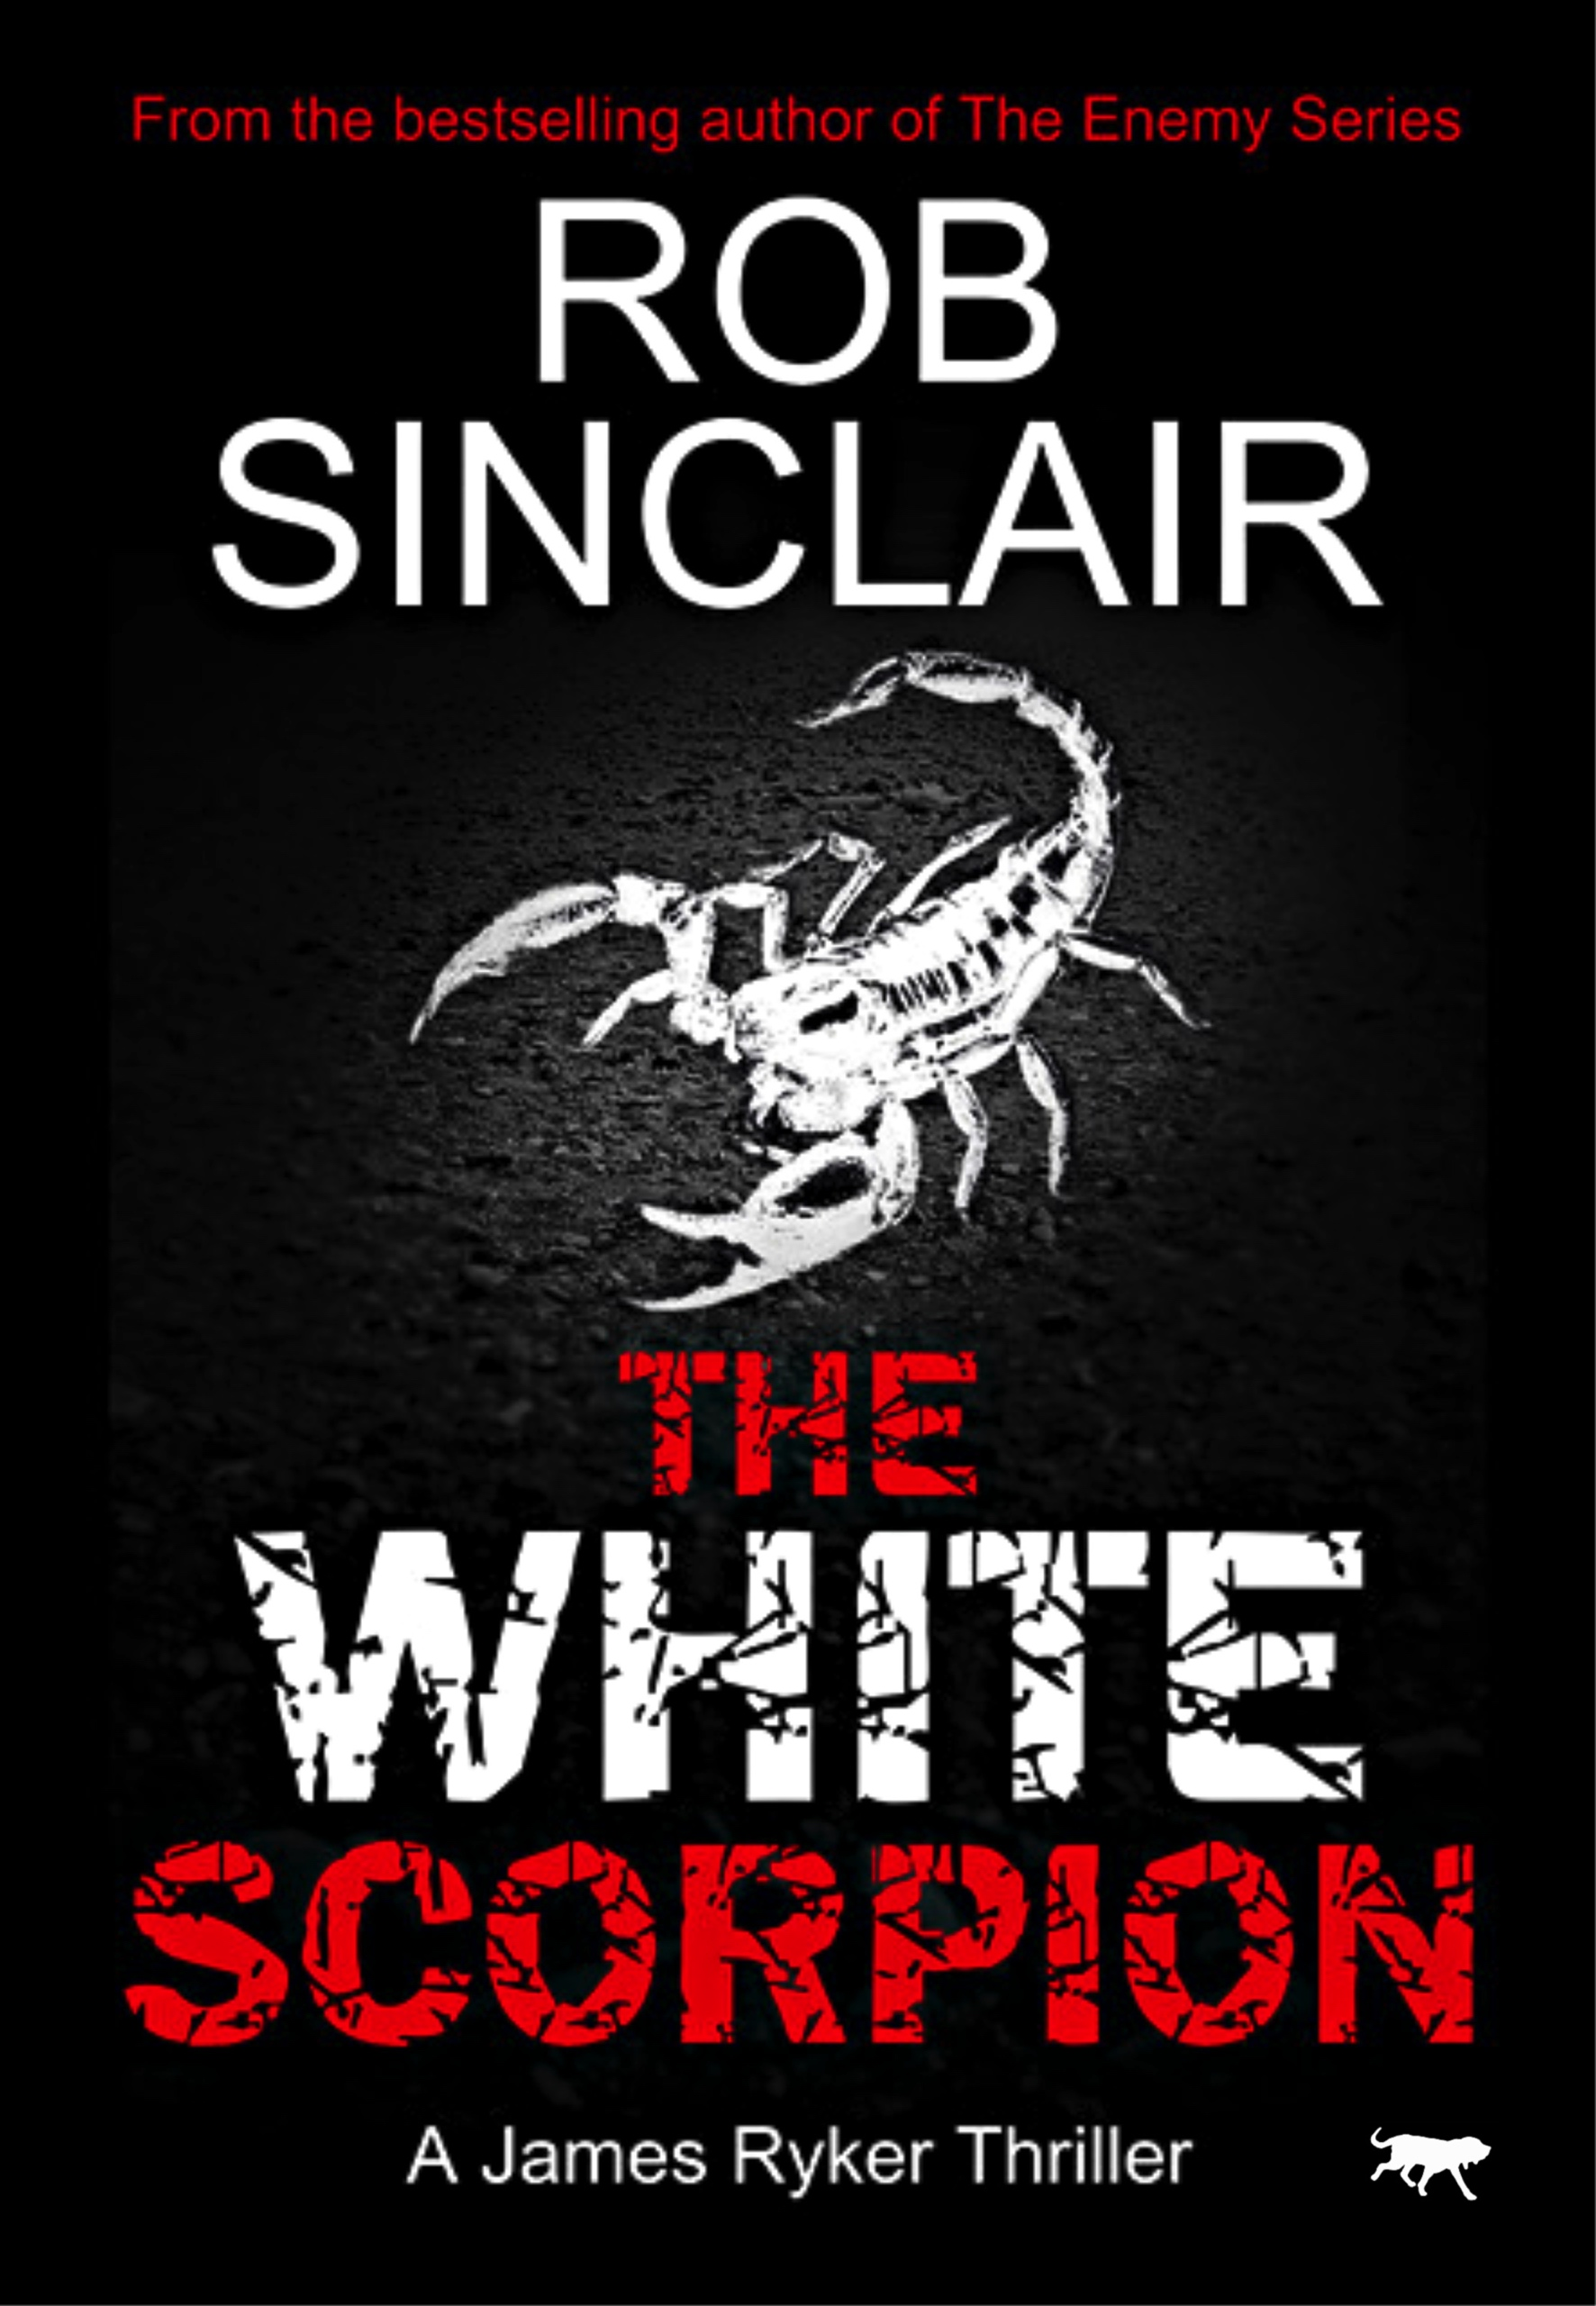 The-White-Scorpion-Kindle.jpg